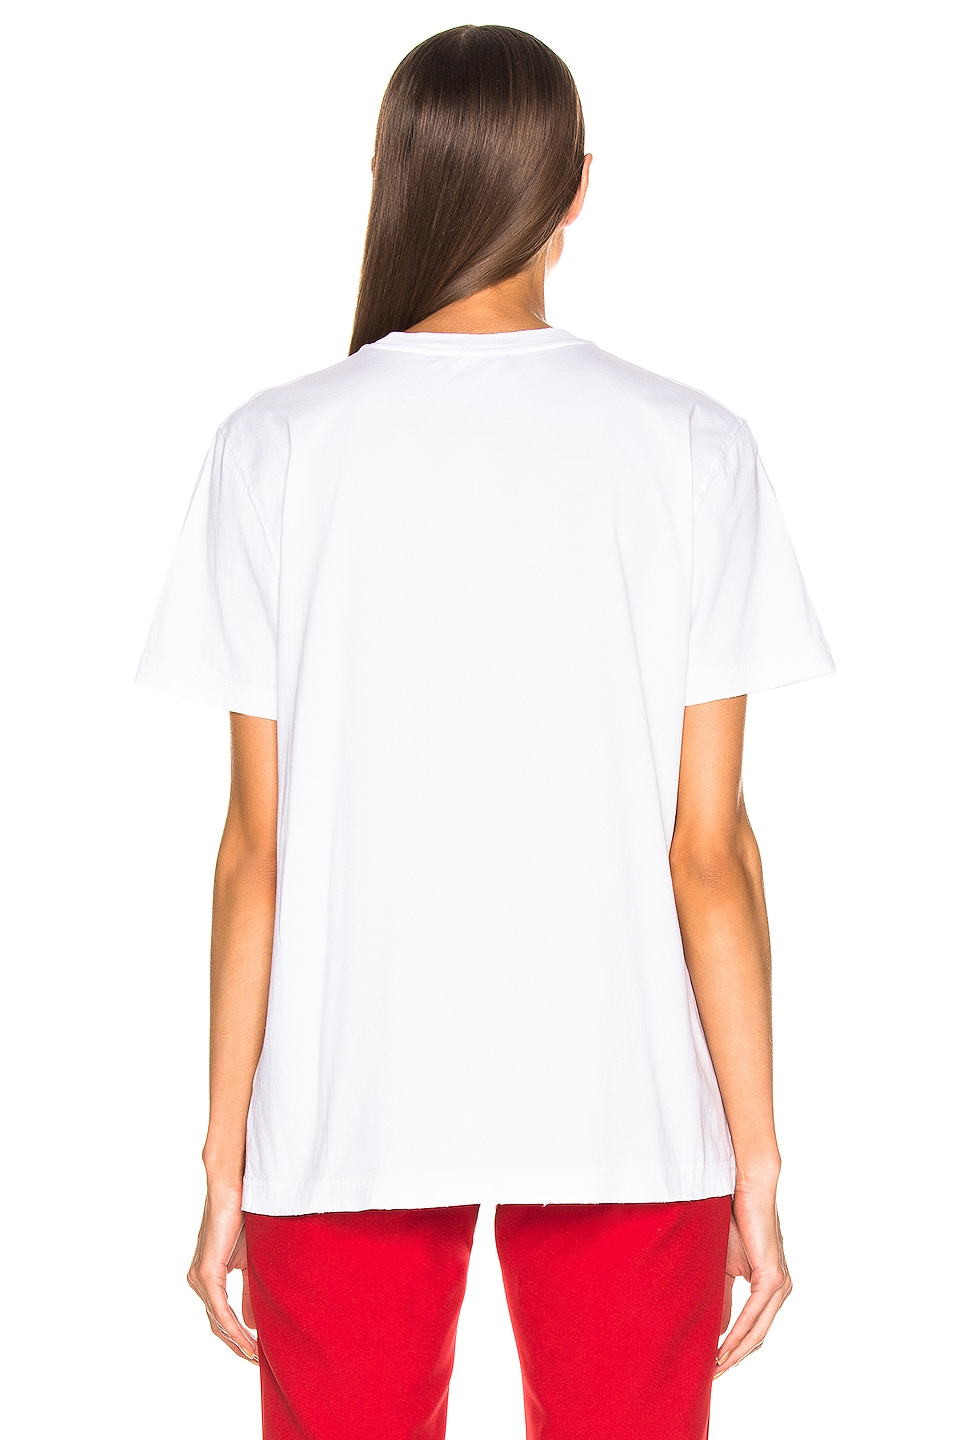 Image 3 of CALVIN KLEIN 205W39NYC Jaws Tee Shirt in Optic White